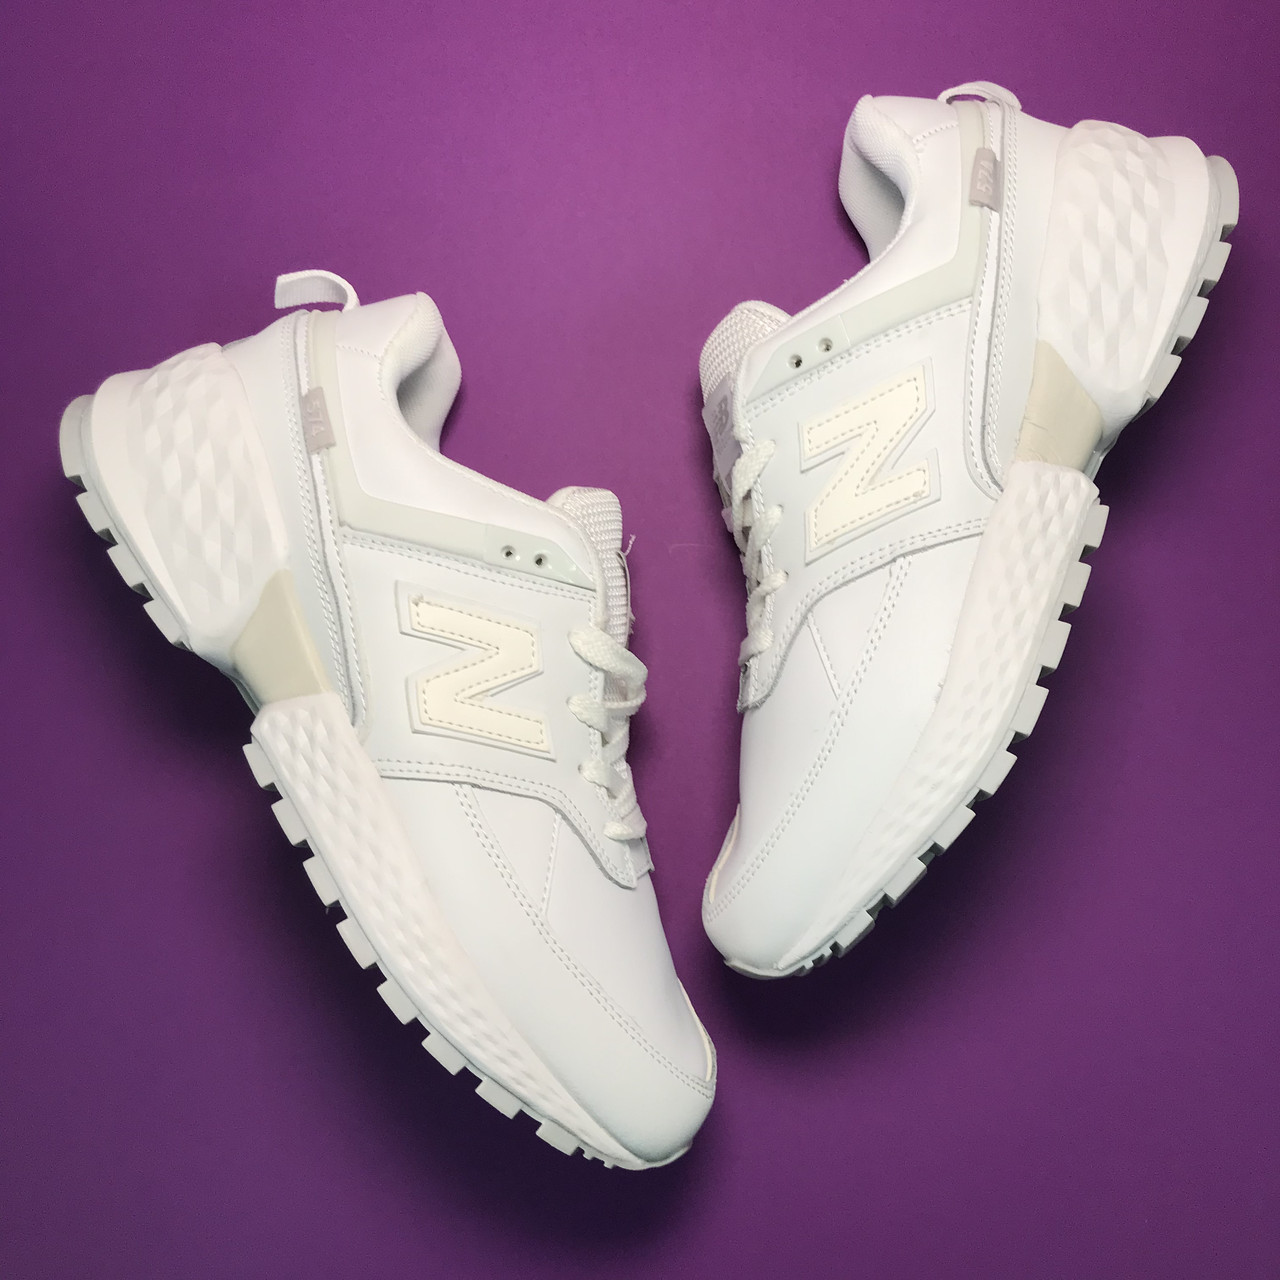 New Balance 574 Full White